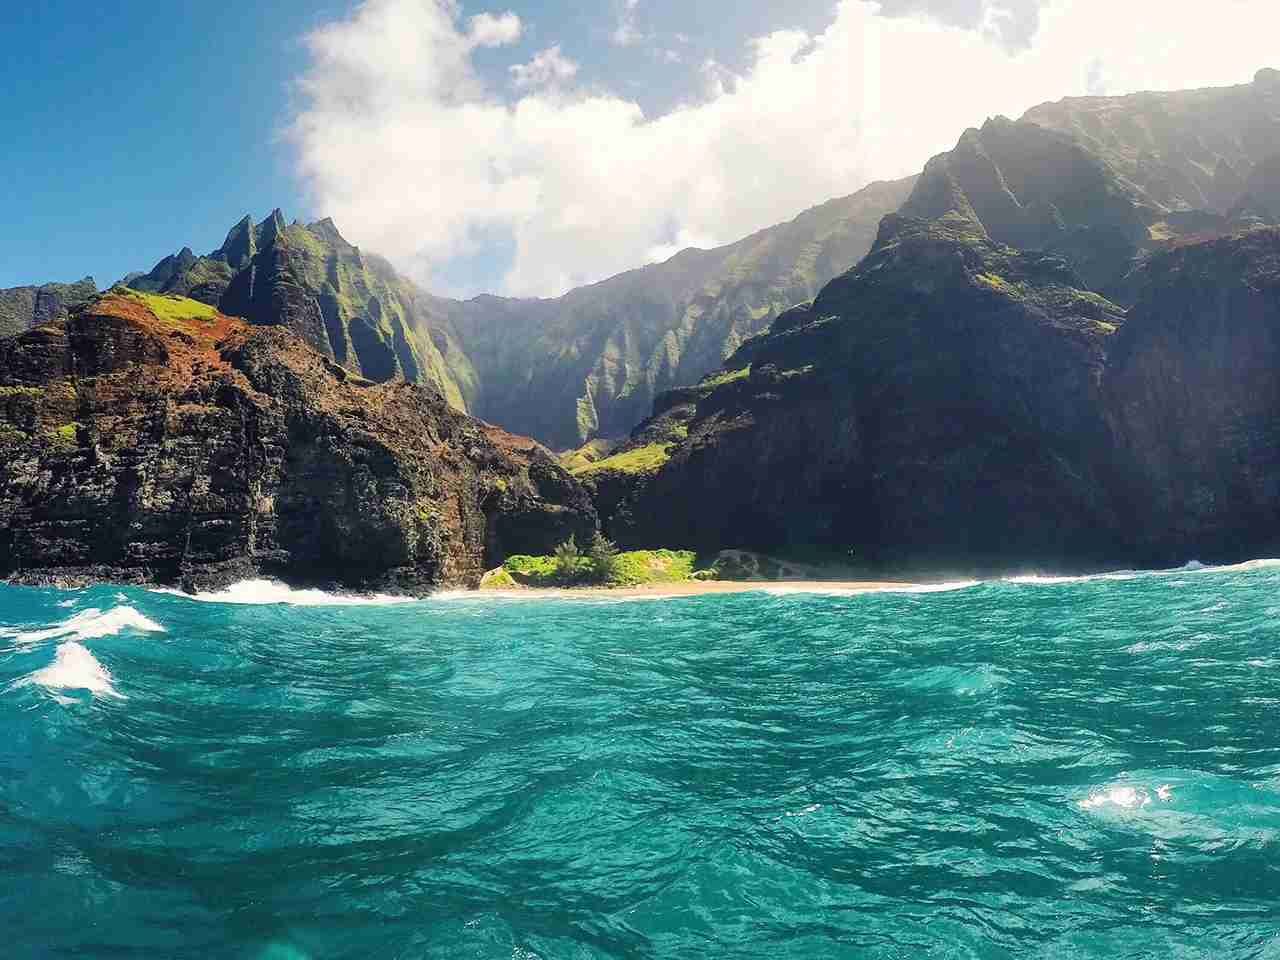 Na Pali Coast on Kauai. (Photo by @beatrizann562 via Twenty20)